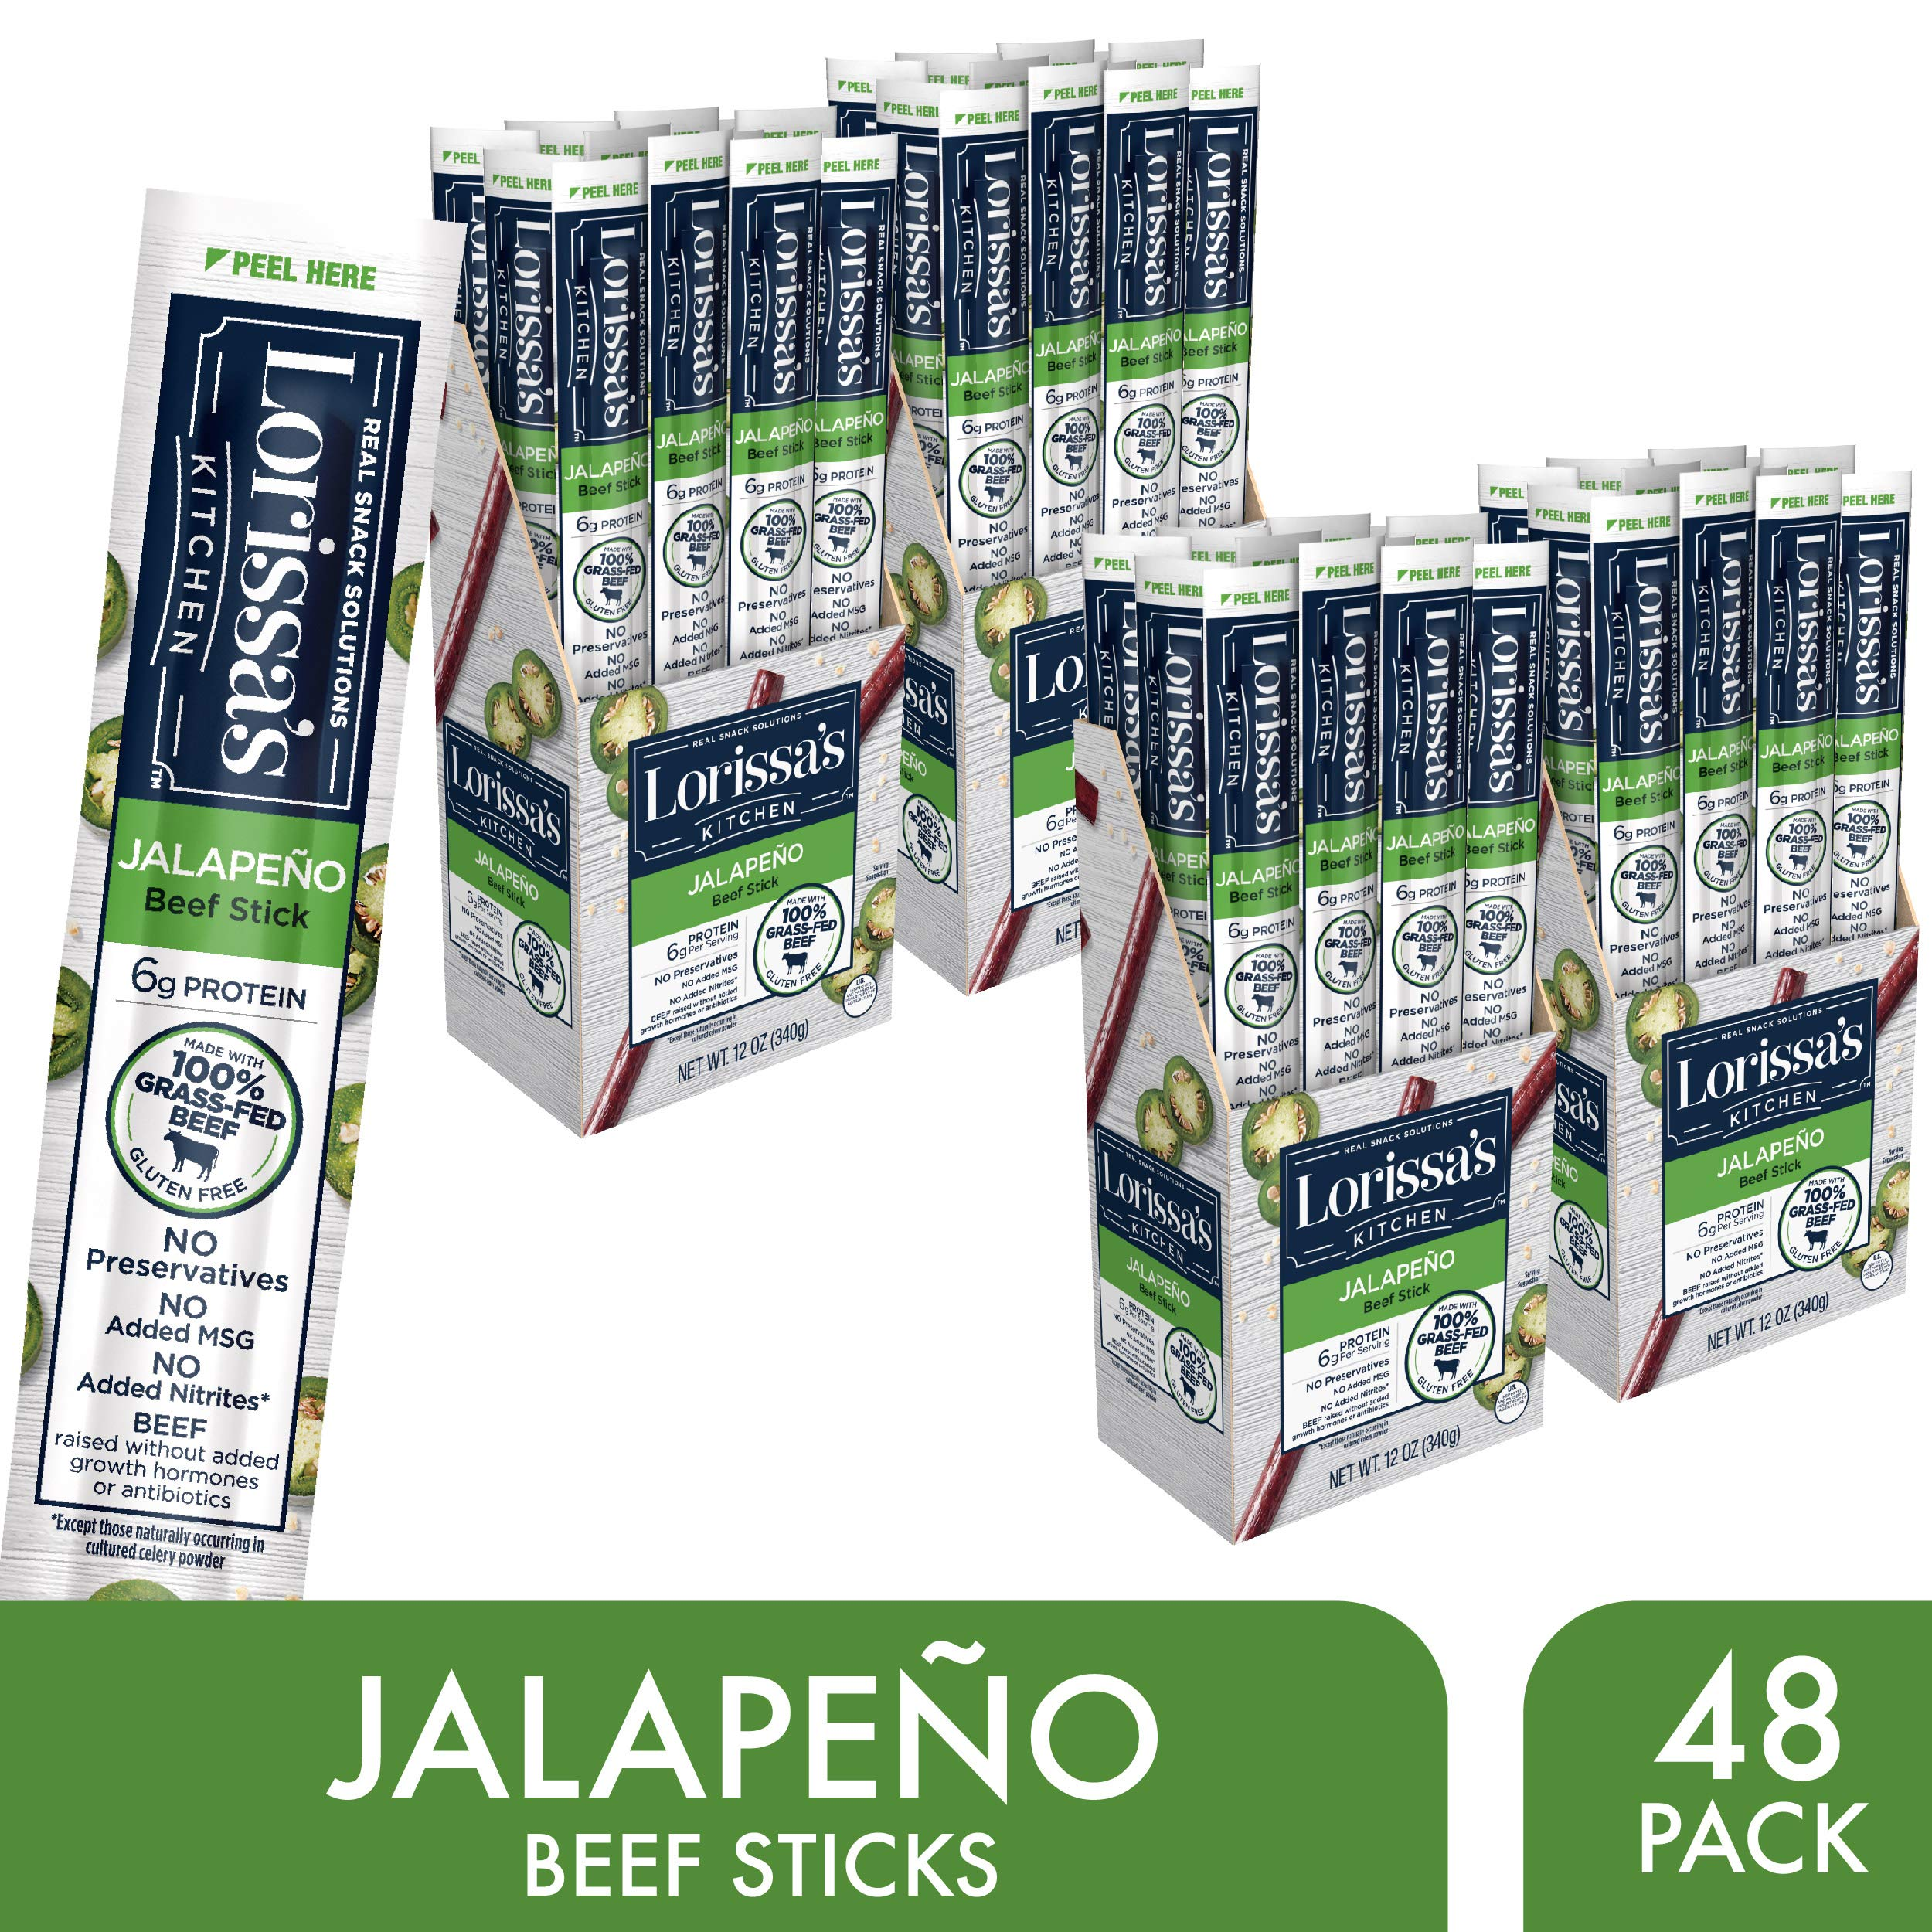 Lorissa's Kitchen Grass Fed Beef Sticks, Jalapeño, 1 oz., Pack of 48 - Made with 100% Grass-Fed Beef, Keto Friendly Snacks, Gluten Free, No Added Nitrites or Nitrates - (Packaging May Vary) by Lorissa's Kitchen